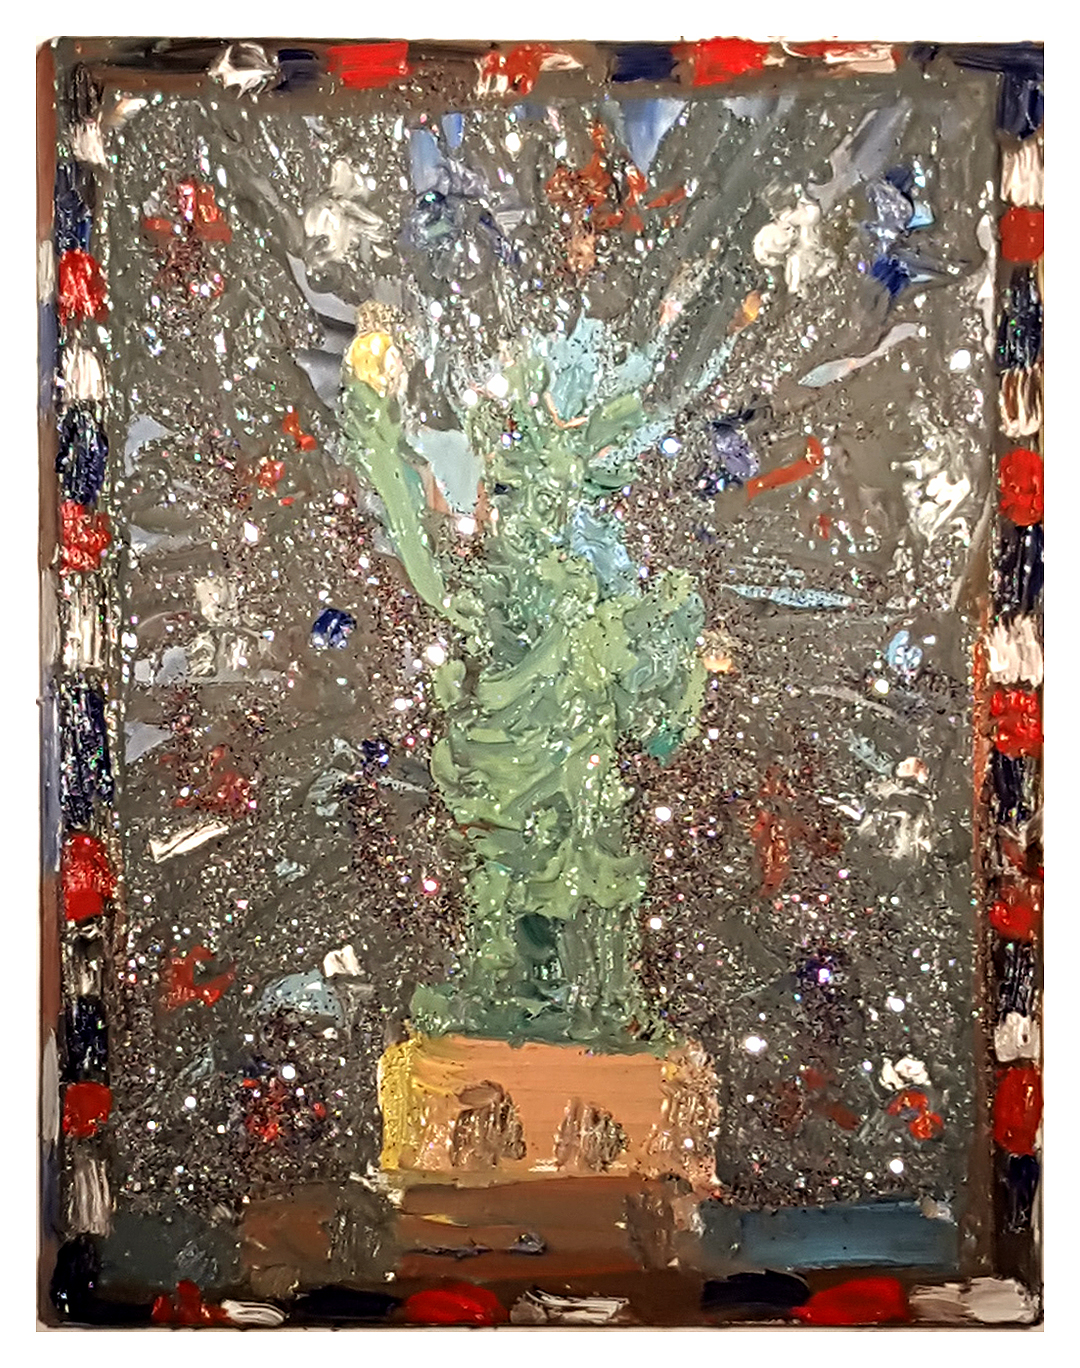 Farrell Brickhouse,  Liberty,  2016, Oil & glitter on canvas, 18h x12w in